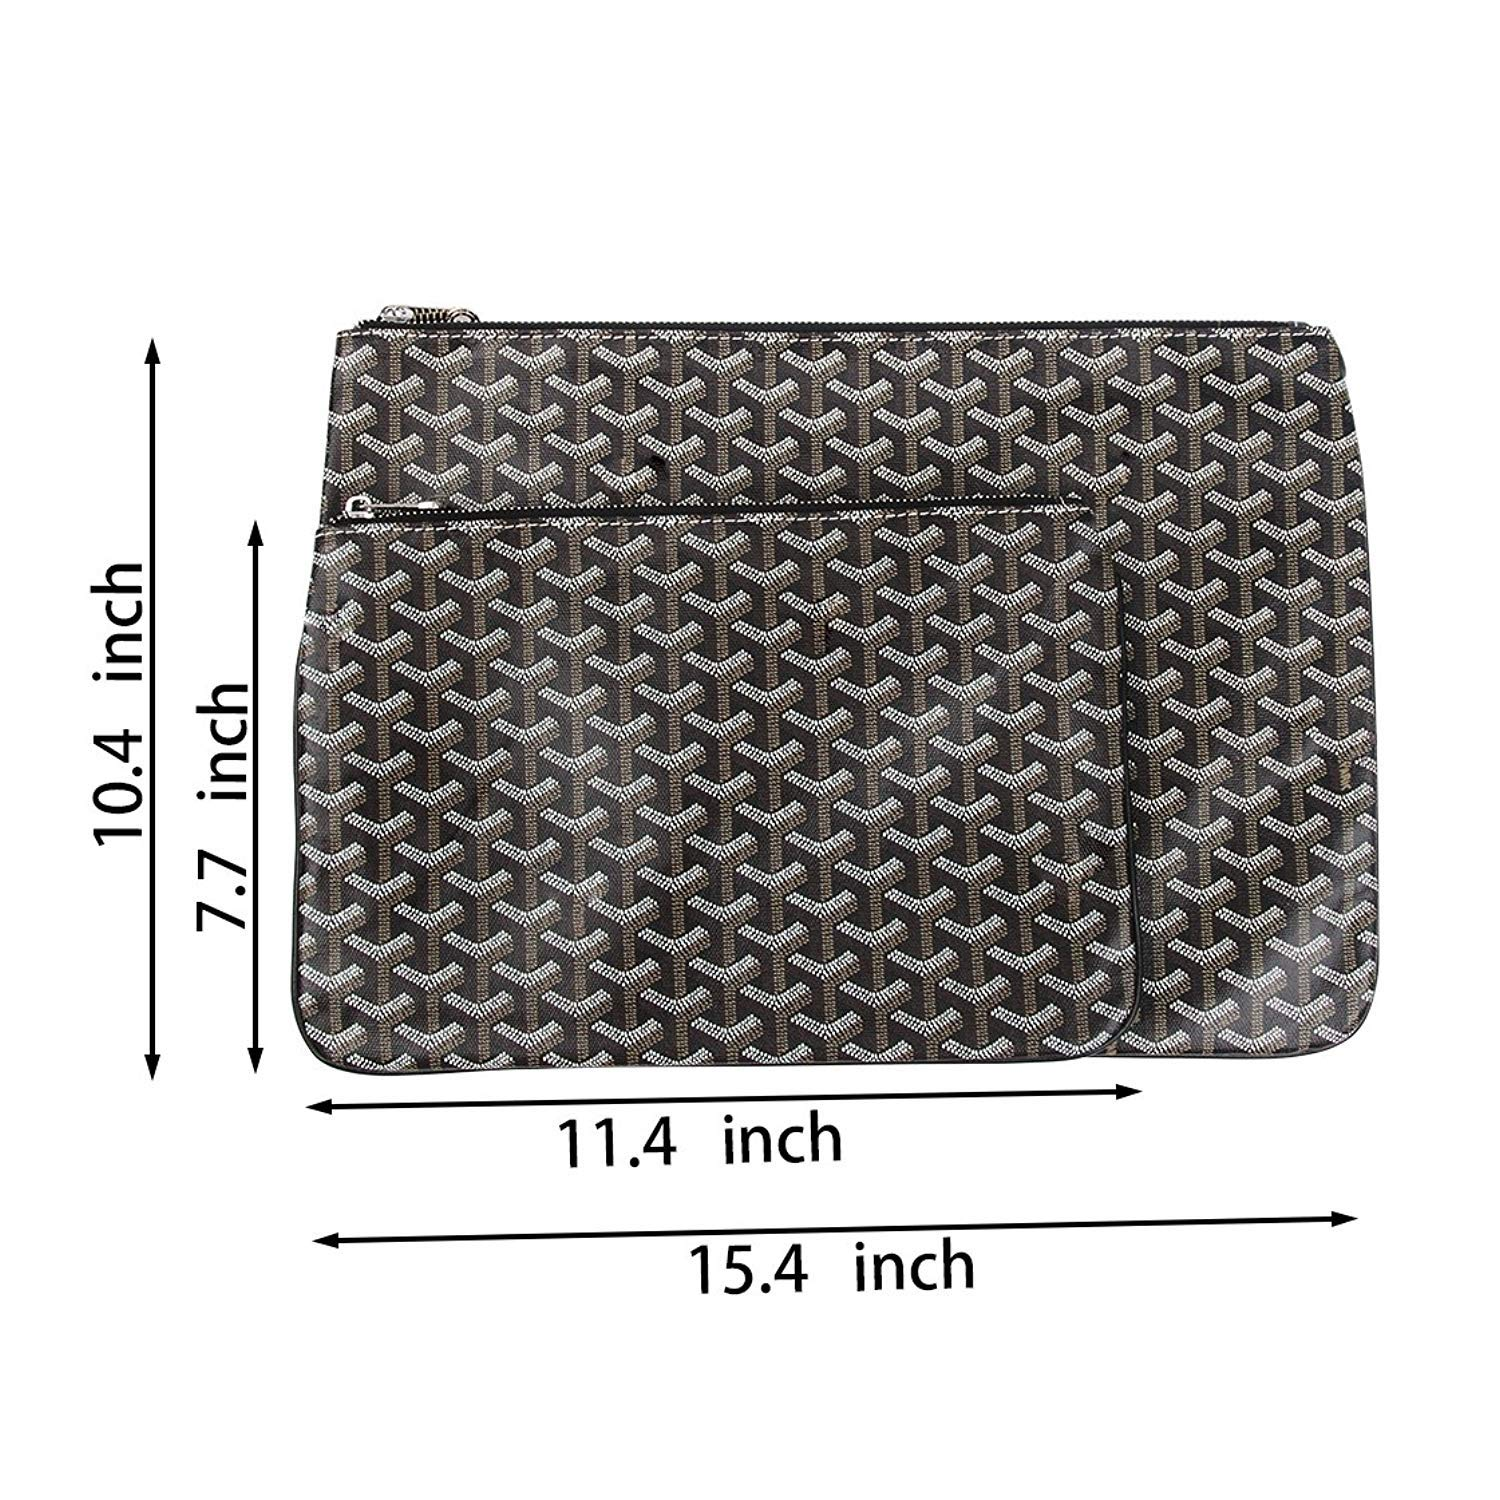 f0b4e40920ee Stylesty Designer Clutch Purses for Women, Pu Envelope Fashion Clutch Bag,  Women Handbag